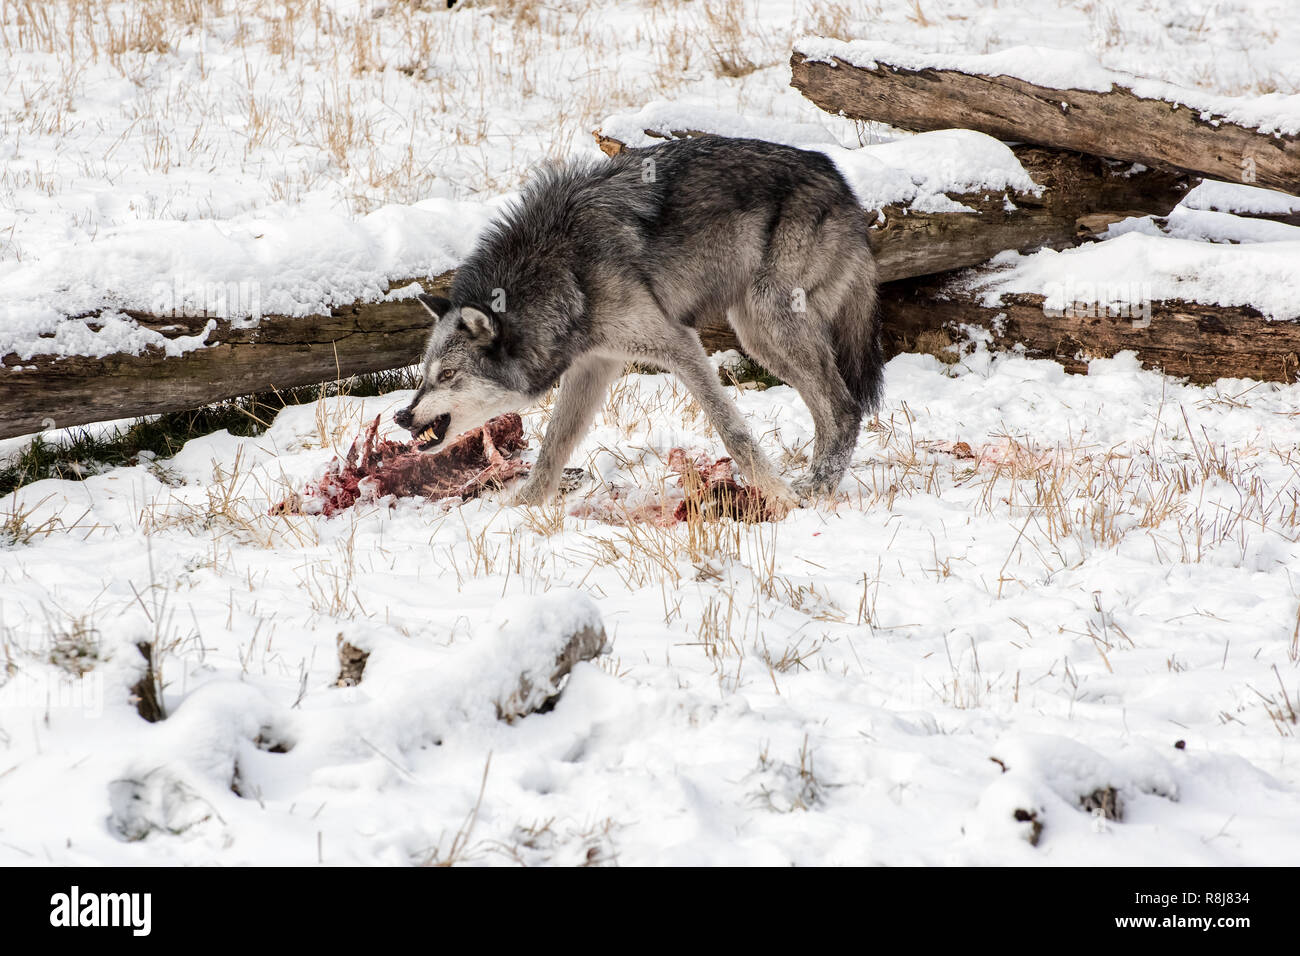 Tundra Wolf Snarling over an Elk Carcass in the Snow - Stock Image